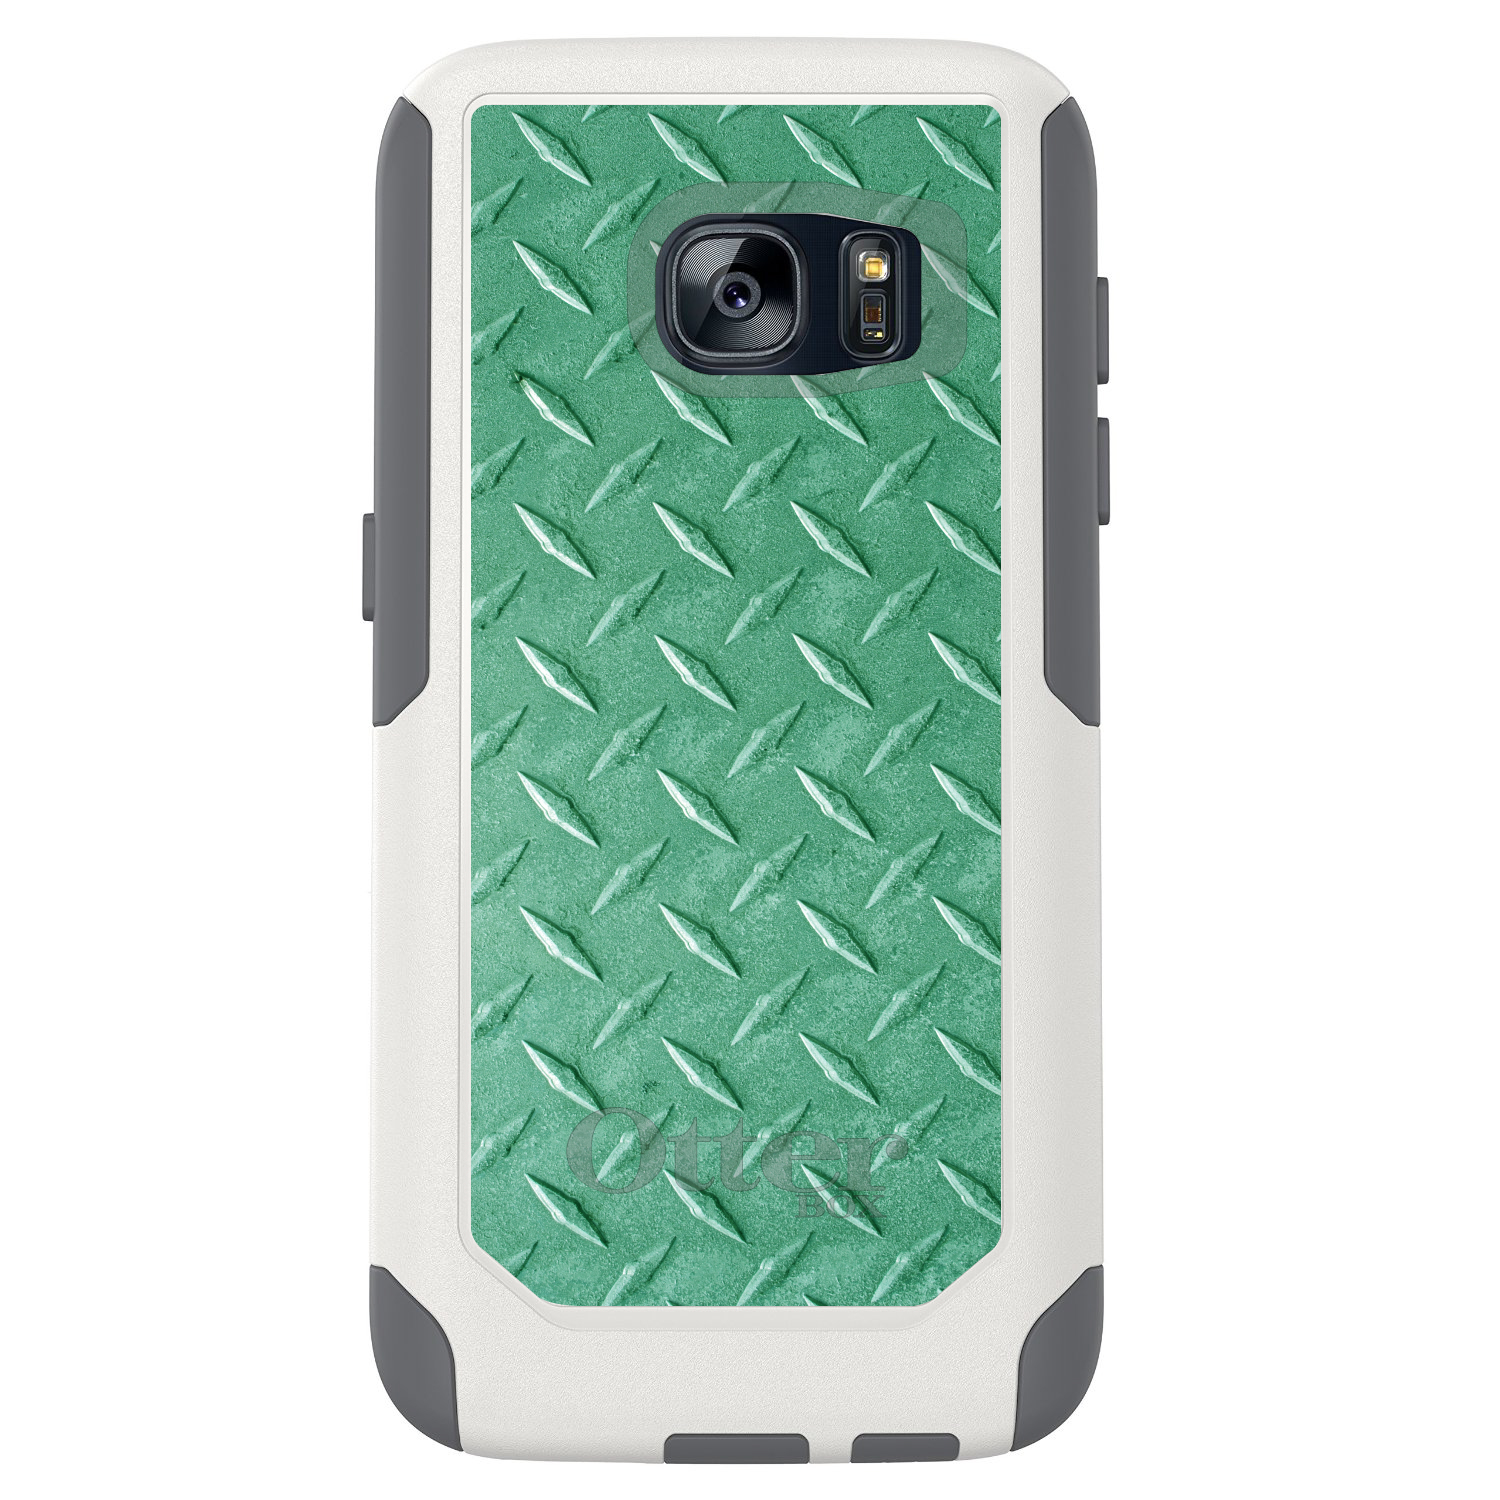 DistinctInk™ Custom White OtterBox Commuter Series Case for Samsung Galaxy S7 - Green Diamond Plate Steel Print